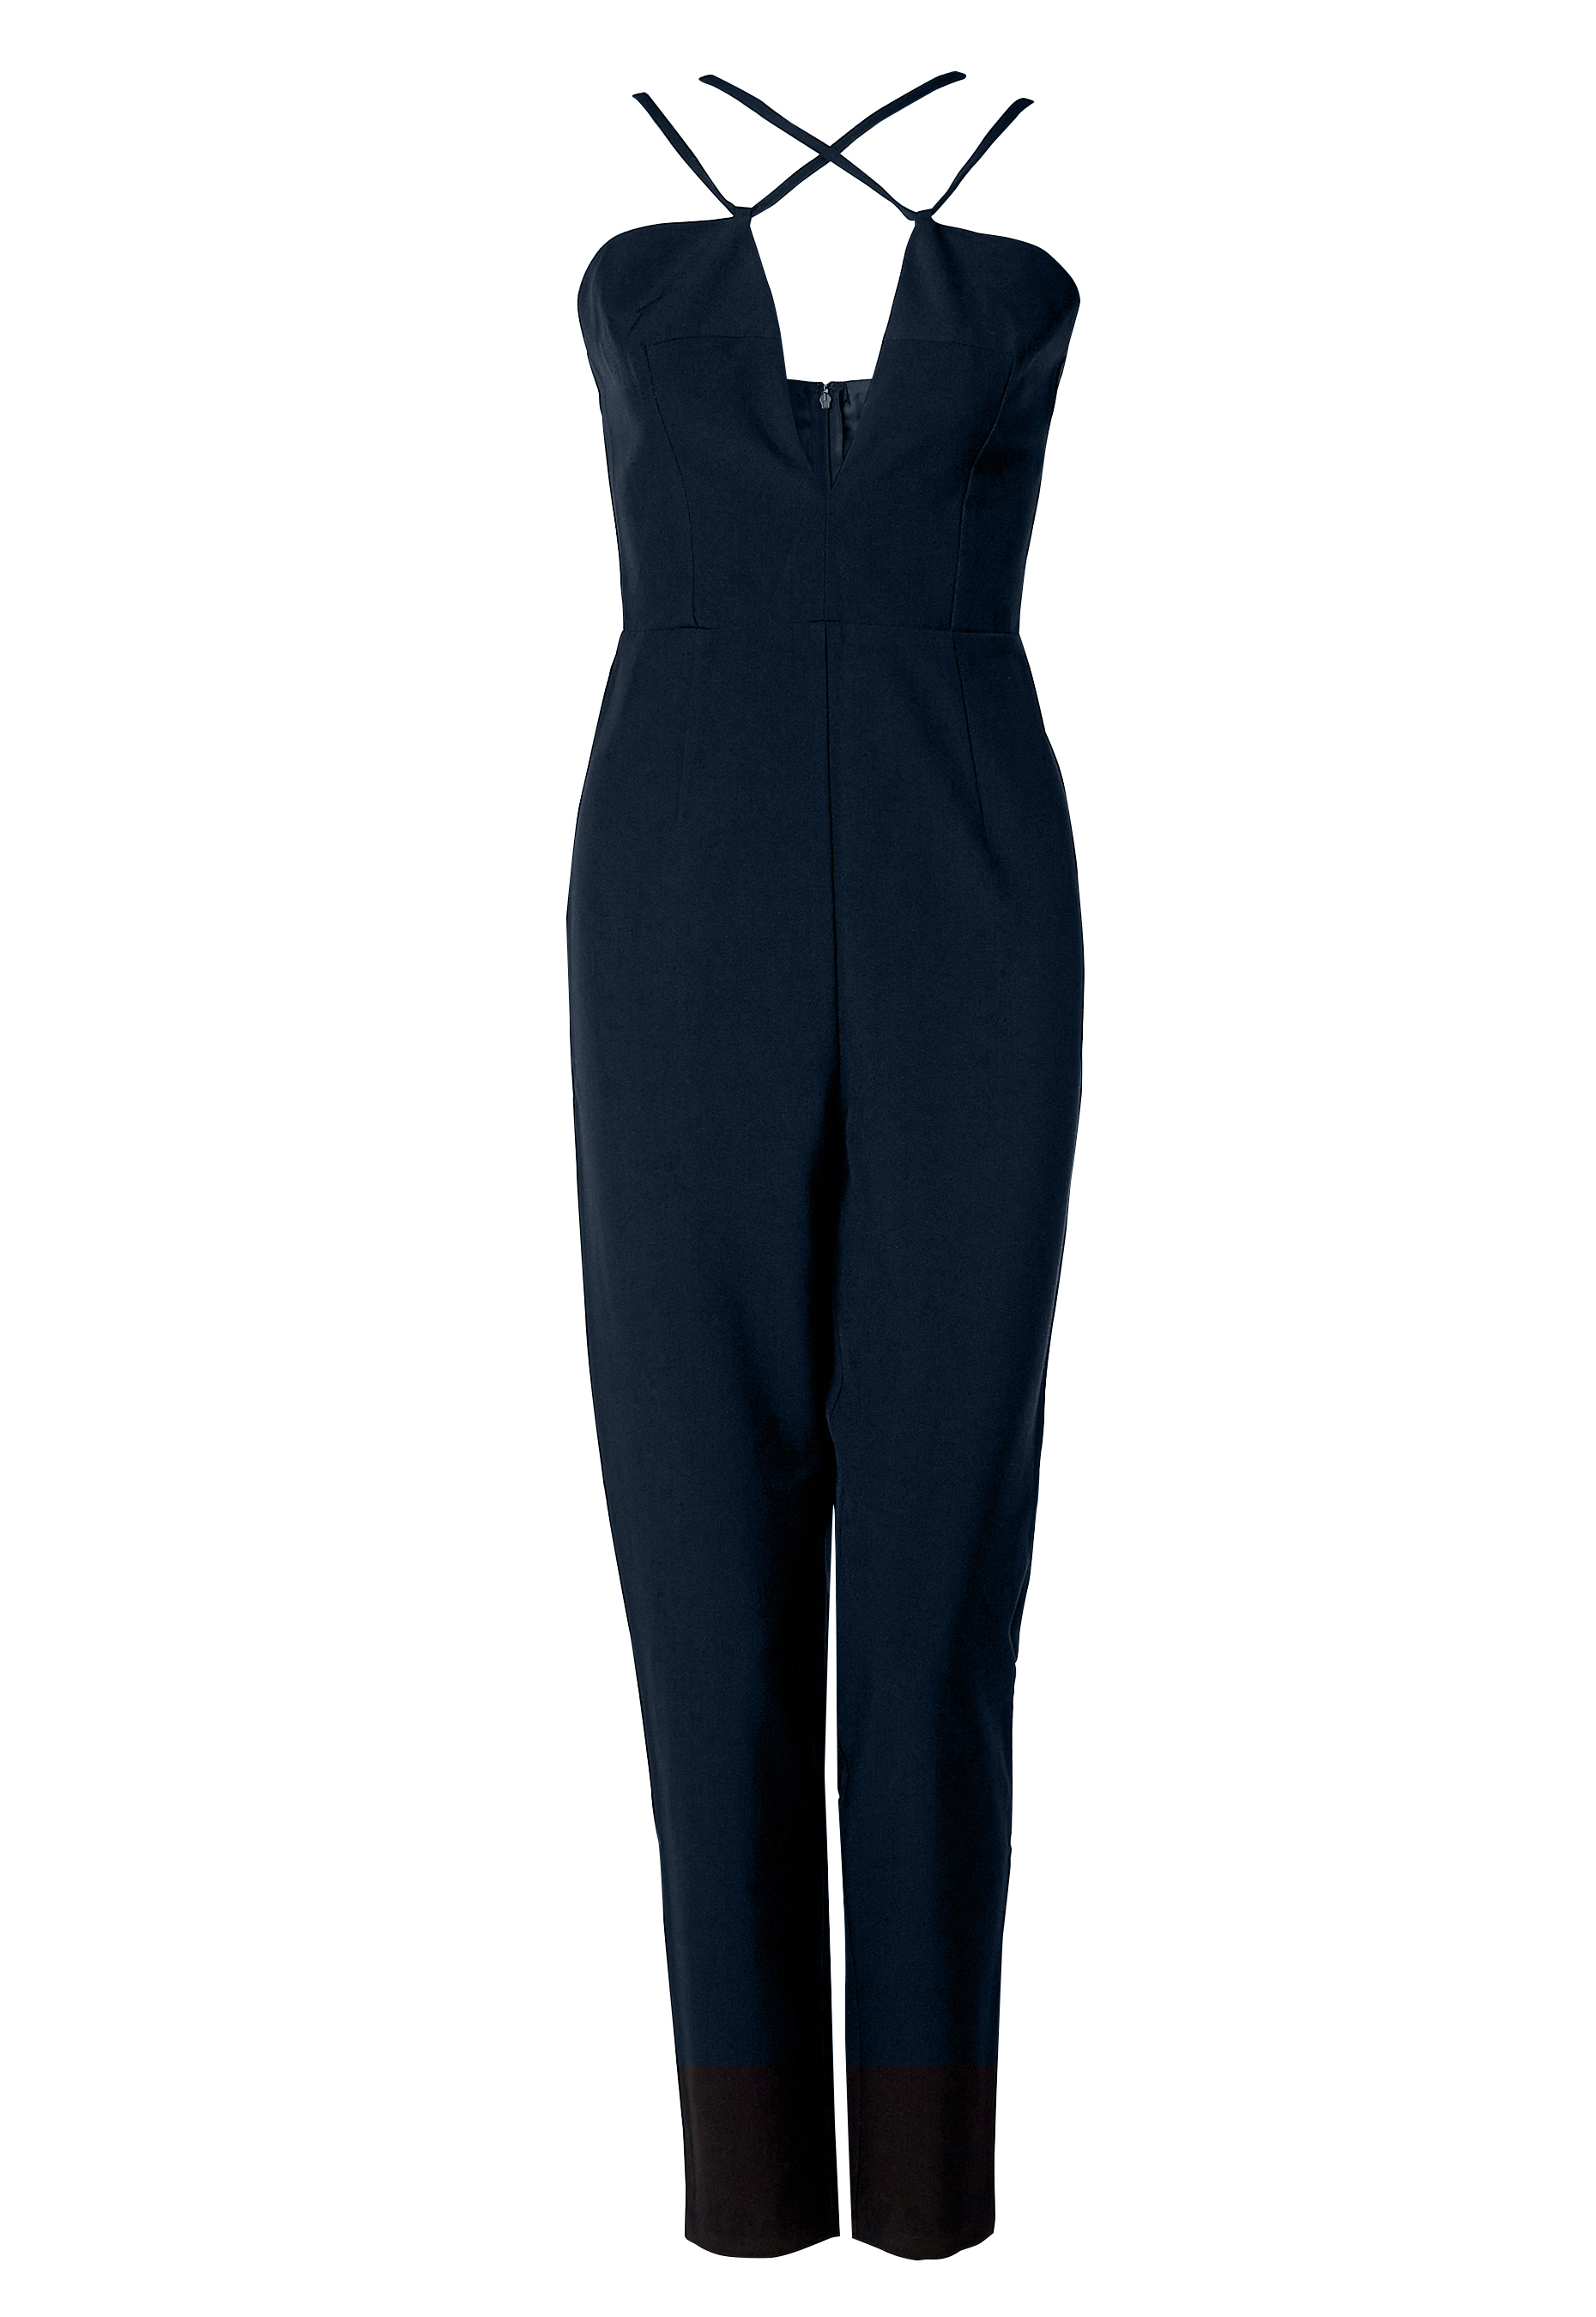 What Colour Shoes To Wear With Midnight Blue Jumpsuit